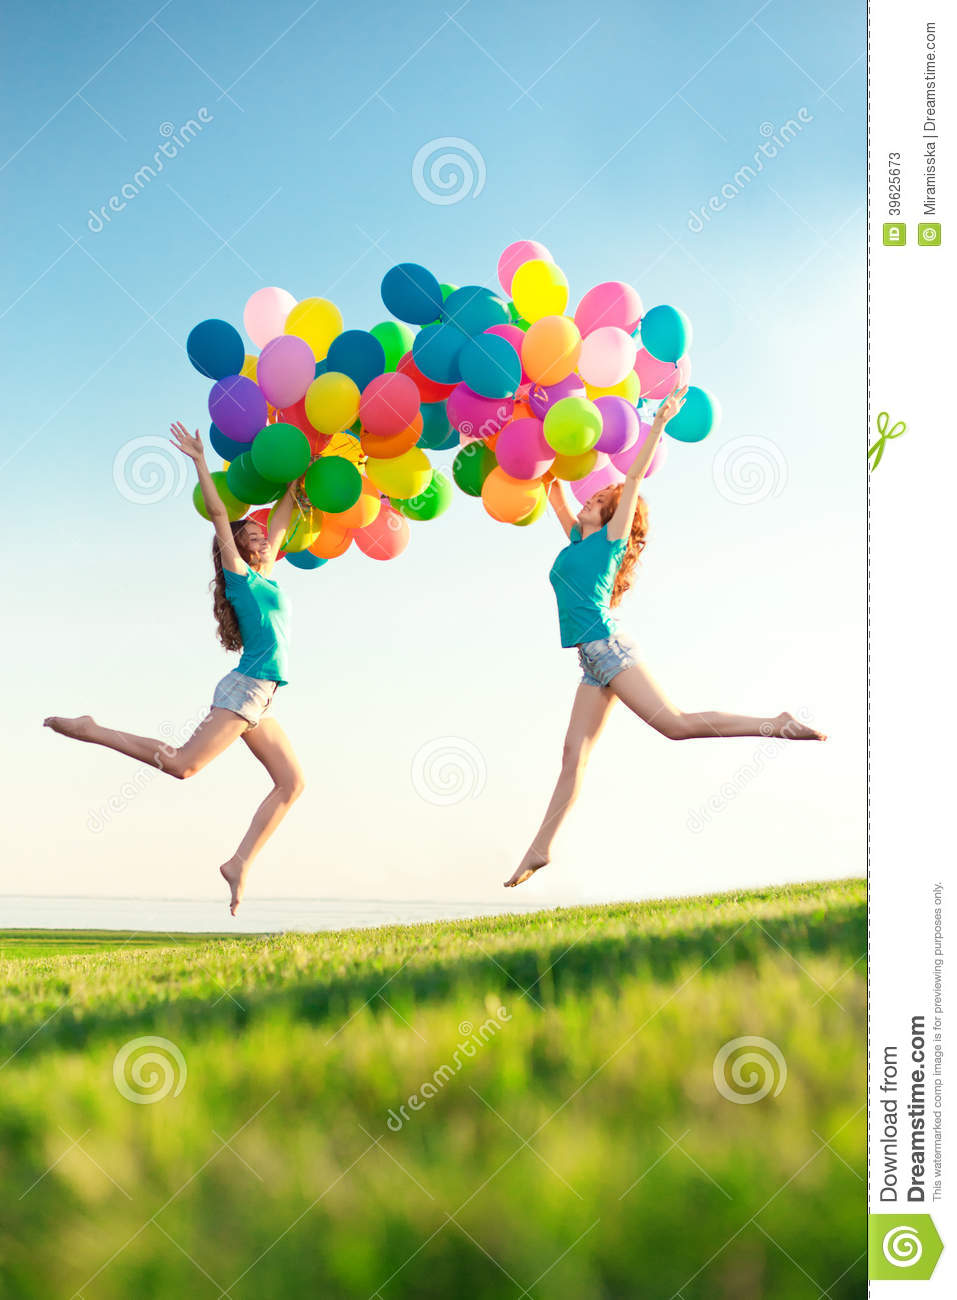 Happy Birthday Women Against The Sky With Rainbow Colored Air Balloons In Her Hands Sunny And Positive Energy Of Nature Young Beautiful Girls Twins On